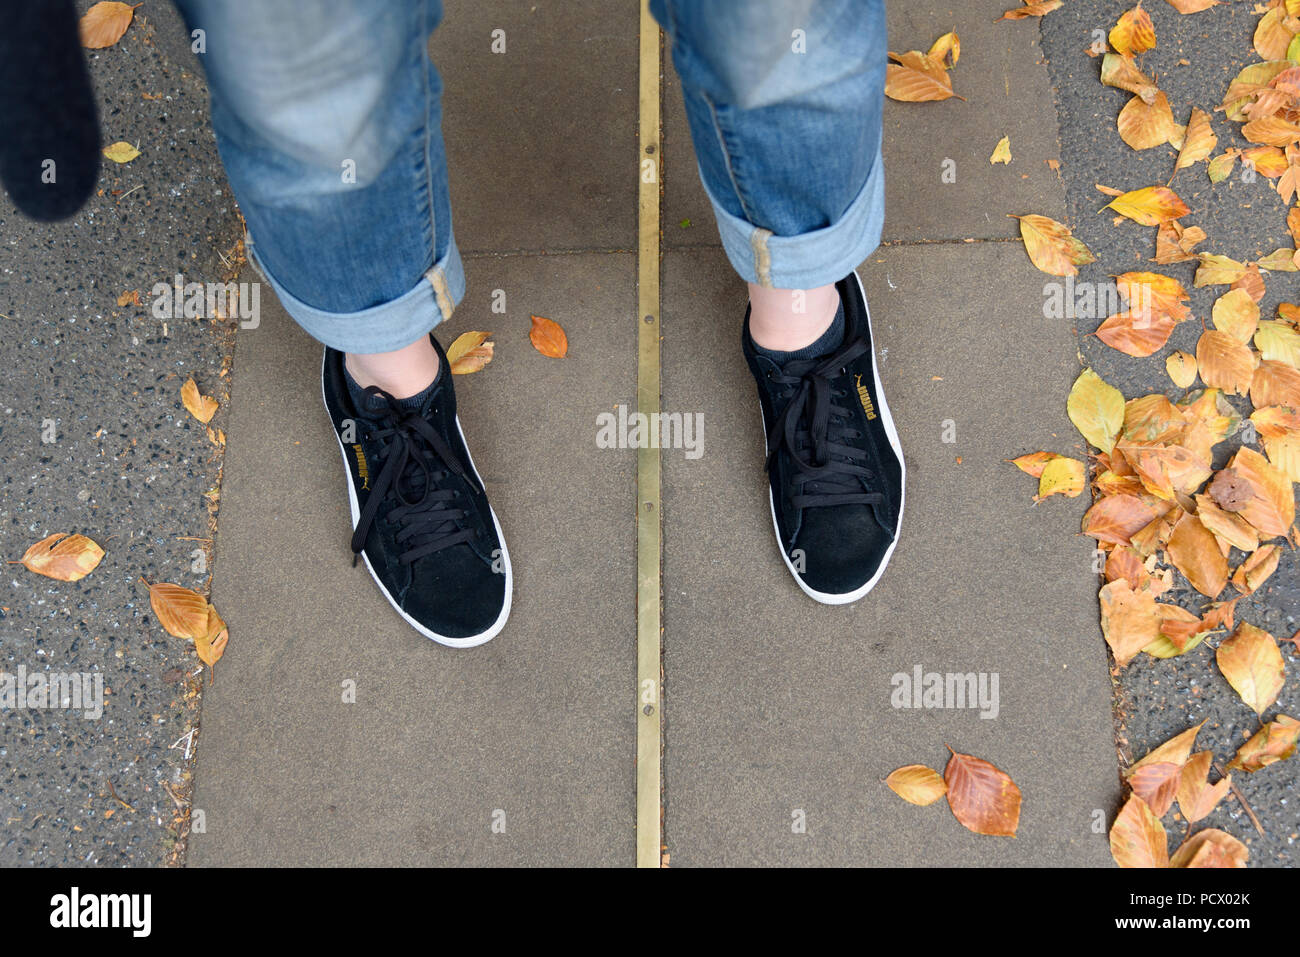 12-10-2017 London, UK. Feet either side of the Greenwich Meridian Line.  Photo: © Simon Grosset - Stock Image